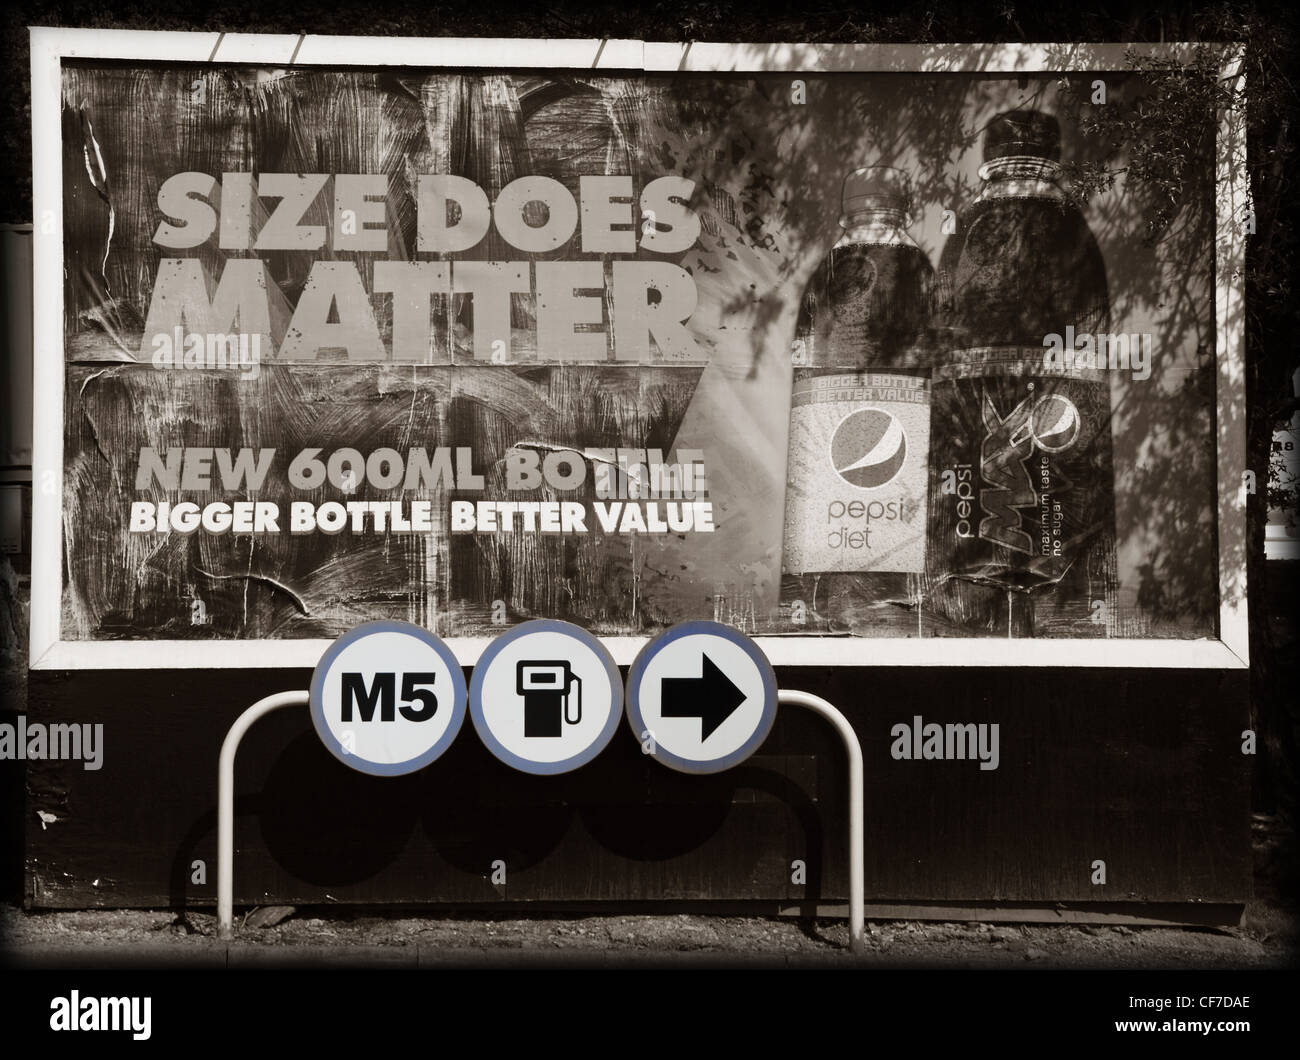 Size does matter poster at M5 Frankly services petrol fuel area - Stock Image